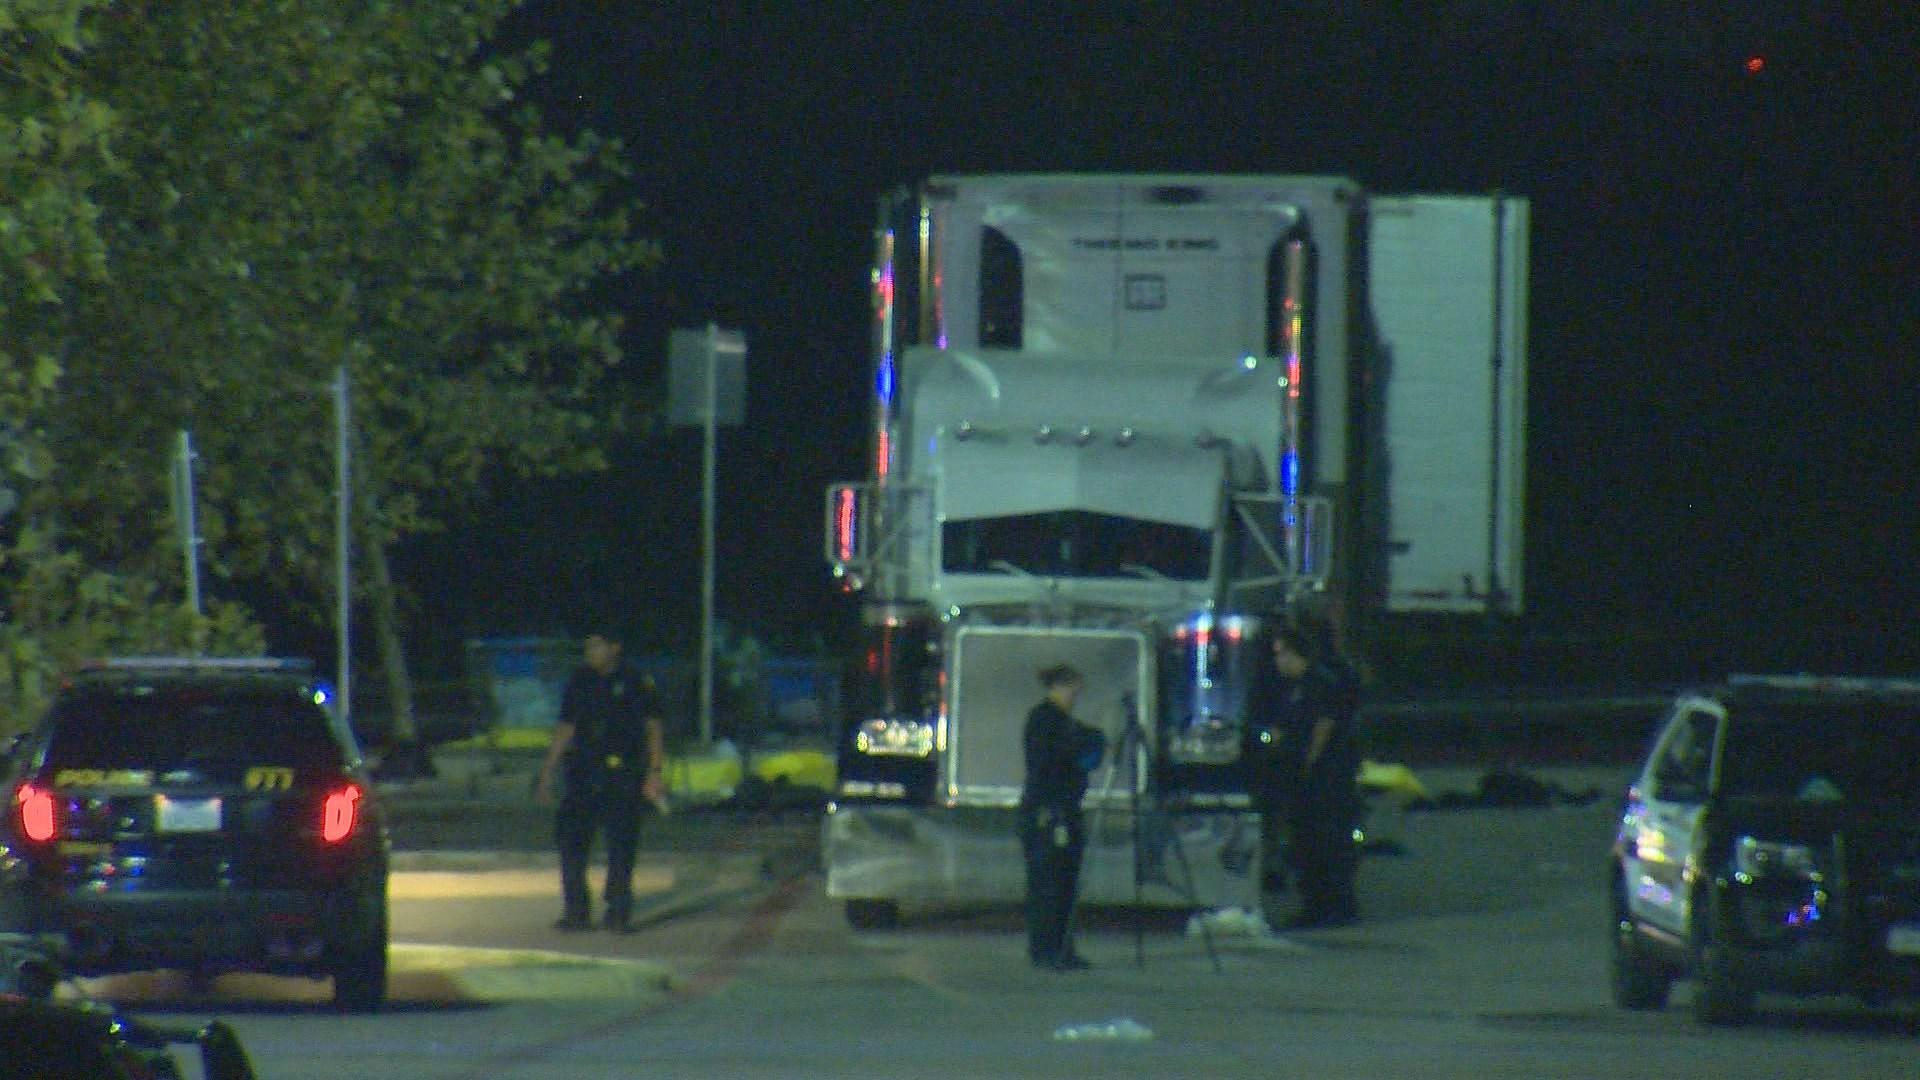 Eight people found dead in truck in Texas parking lot